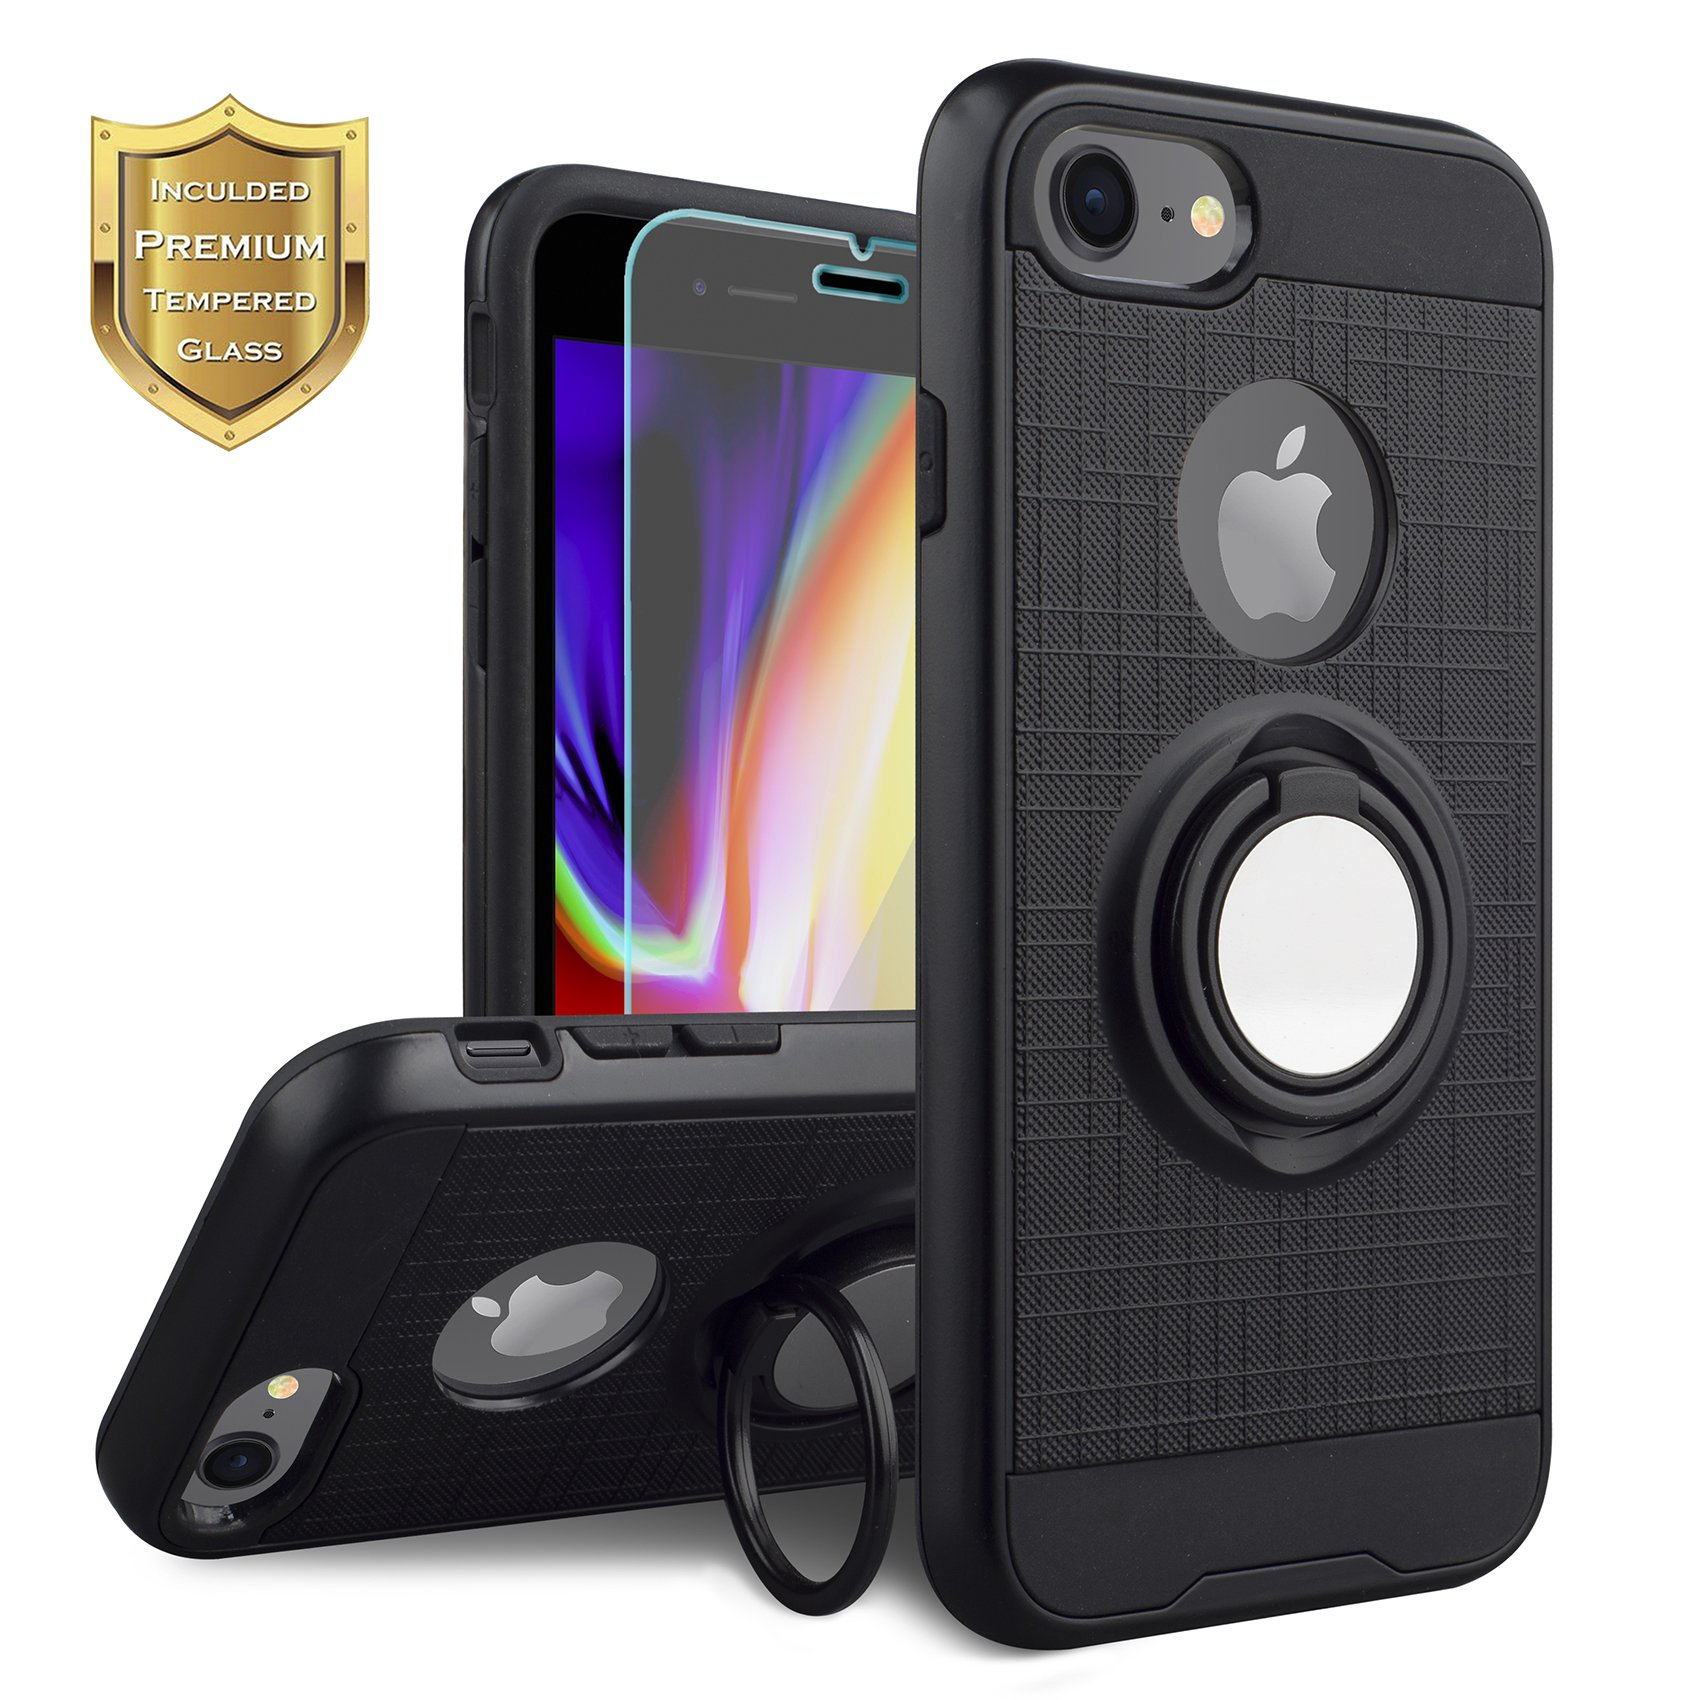 KACHEN Compatible iPhone 8, iPhone 7, 360 Degree Rotating Ring Grip Kickstand Case [Tempered Glass Screen Protector] Dual Layer Protection Compatible Magnetic Car Phone Mount, Black